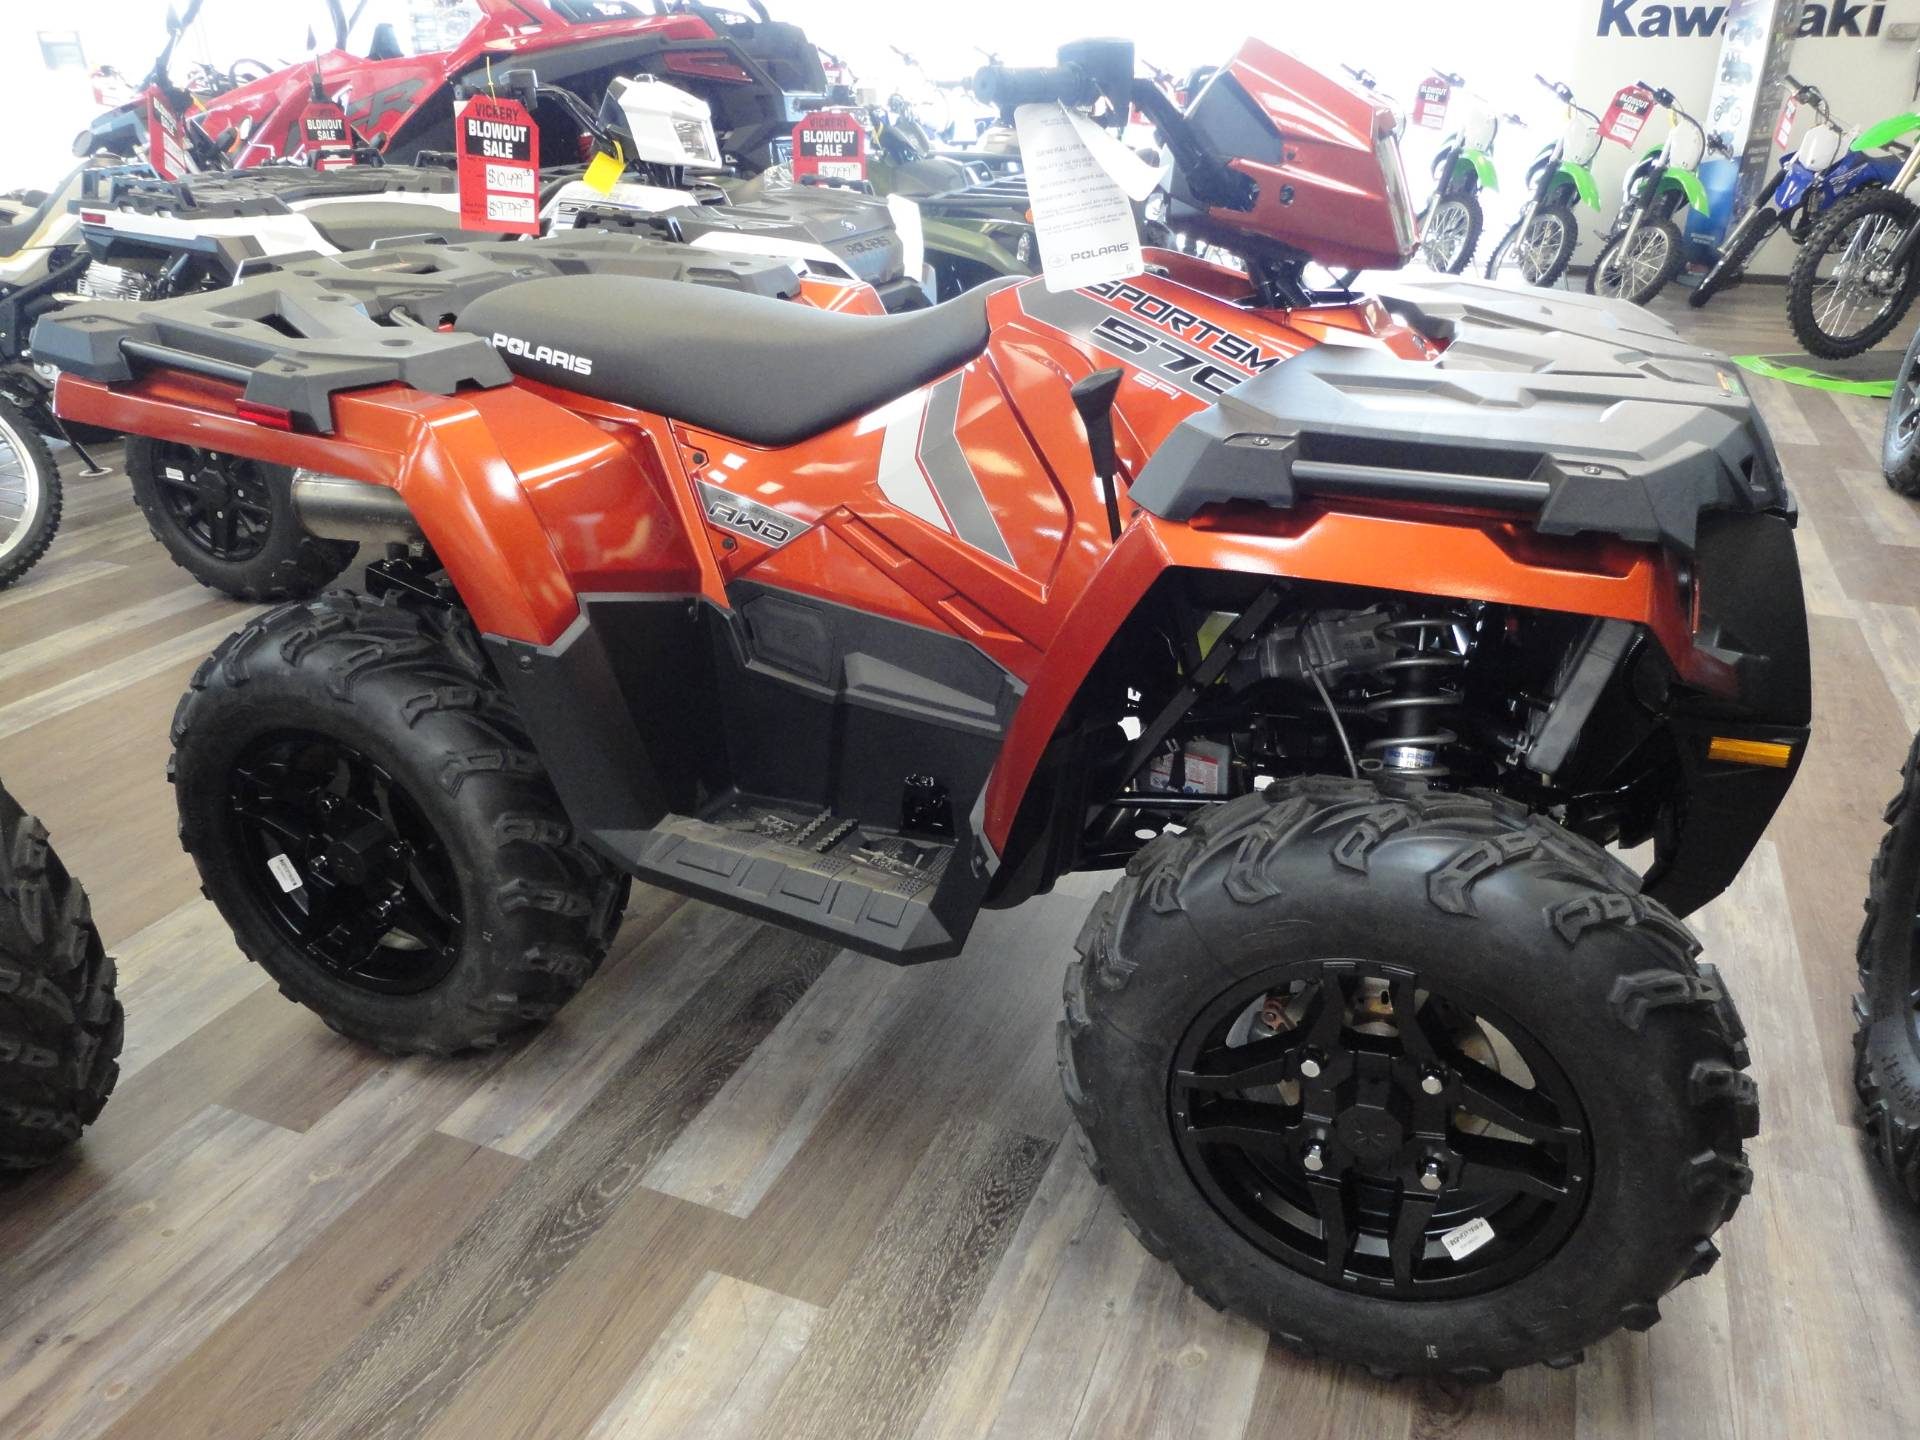 2020 Polaris Sportsman 570 Premium in Denver, Colorado - Photo 11